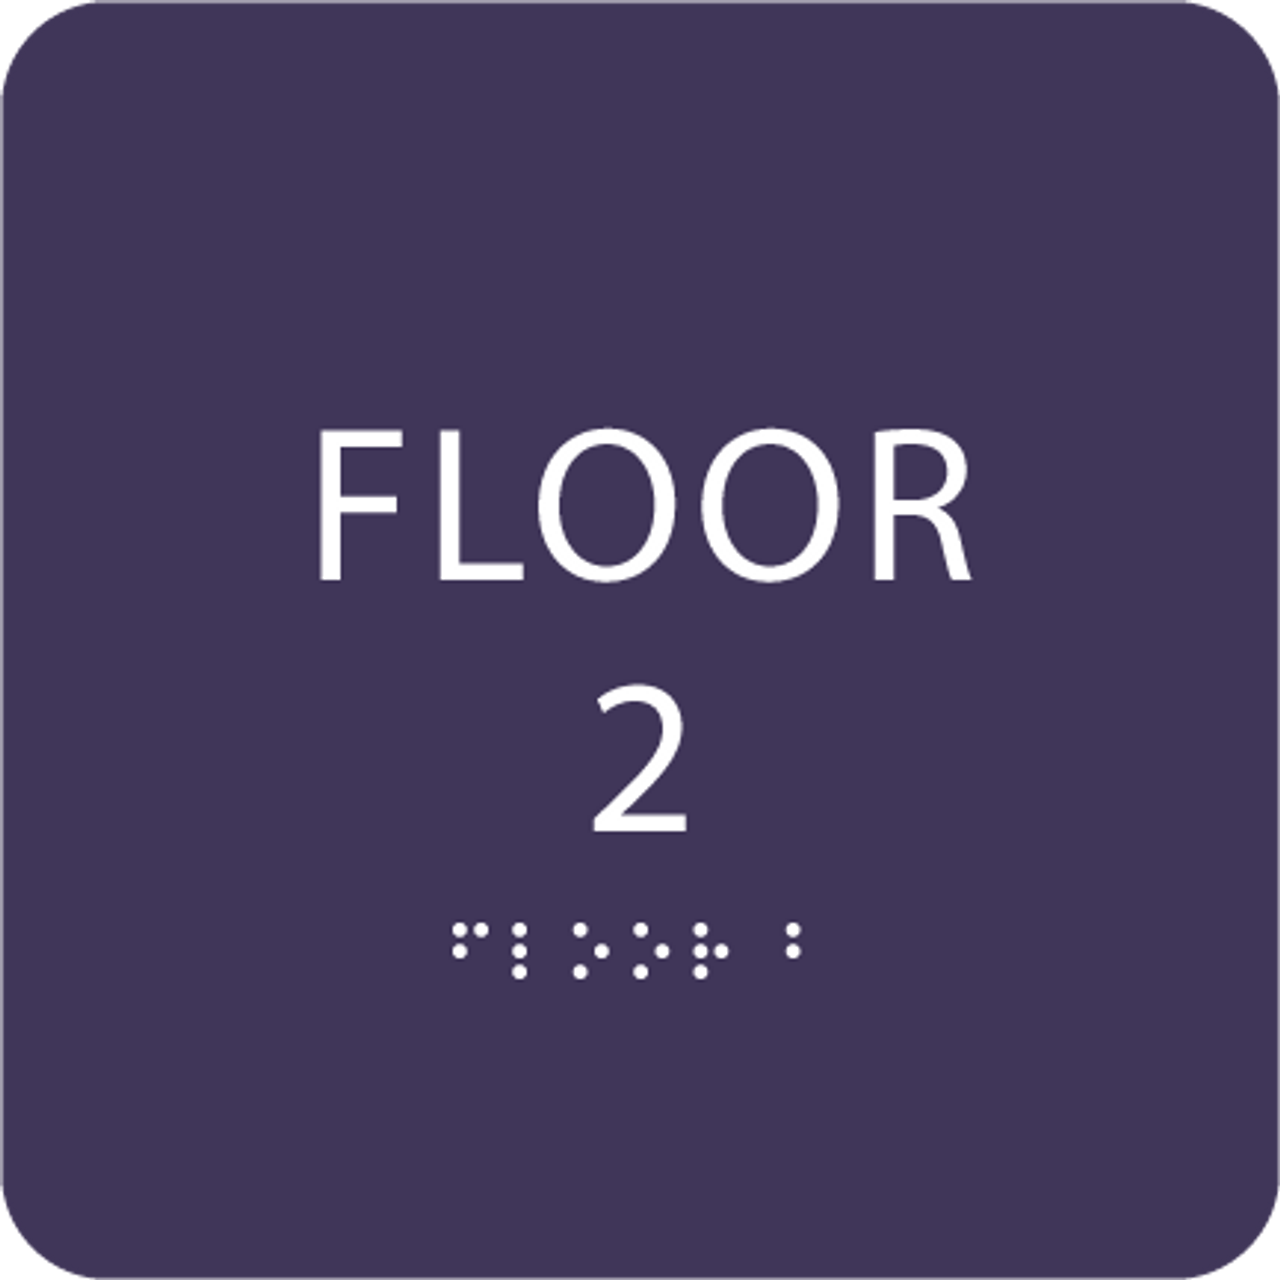 Purple Floor 2 Identification Sign